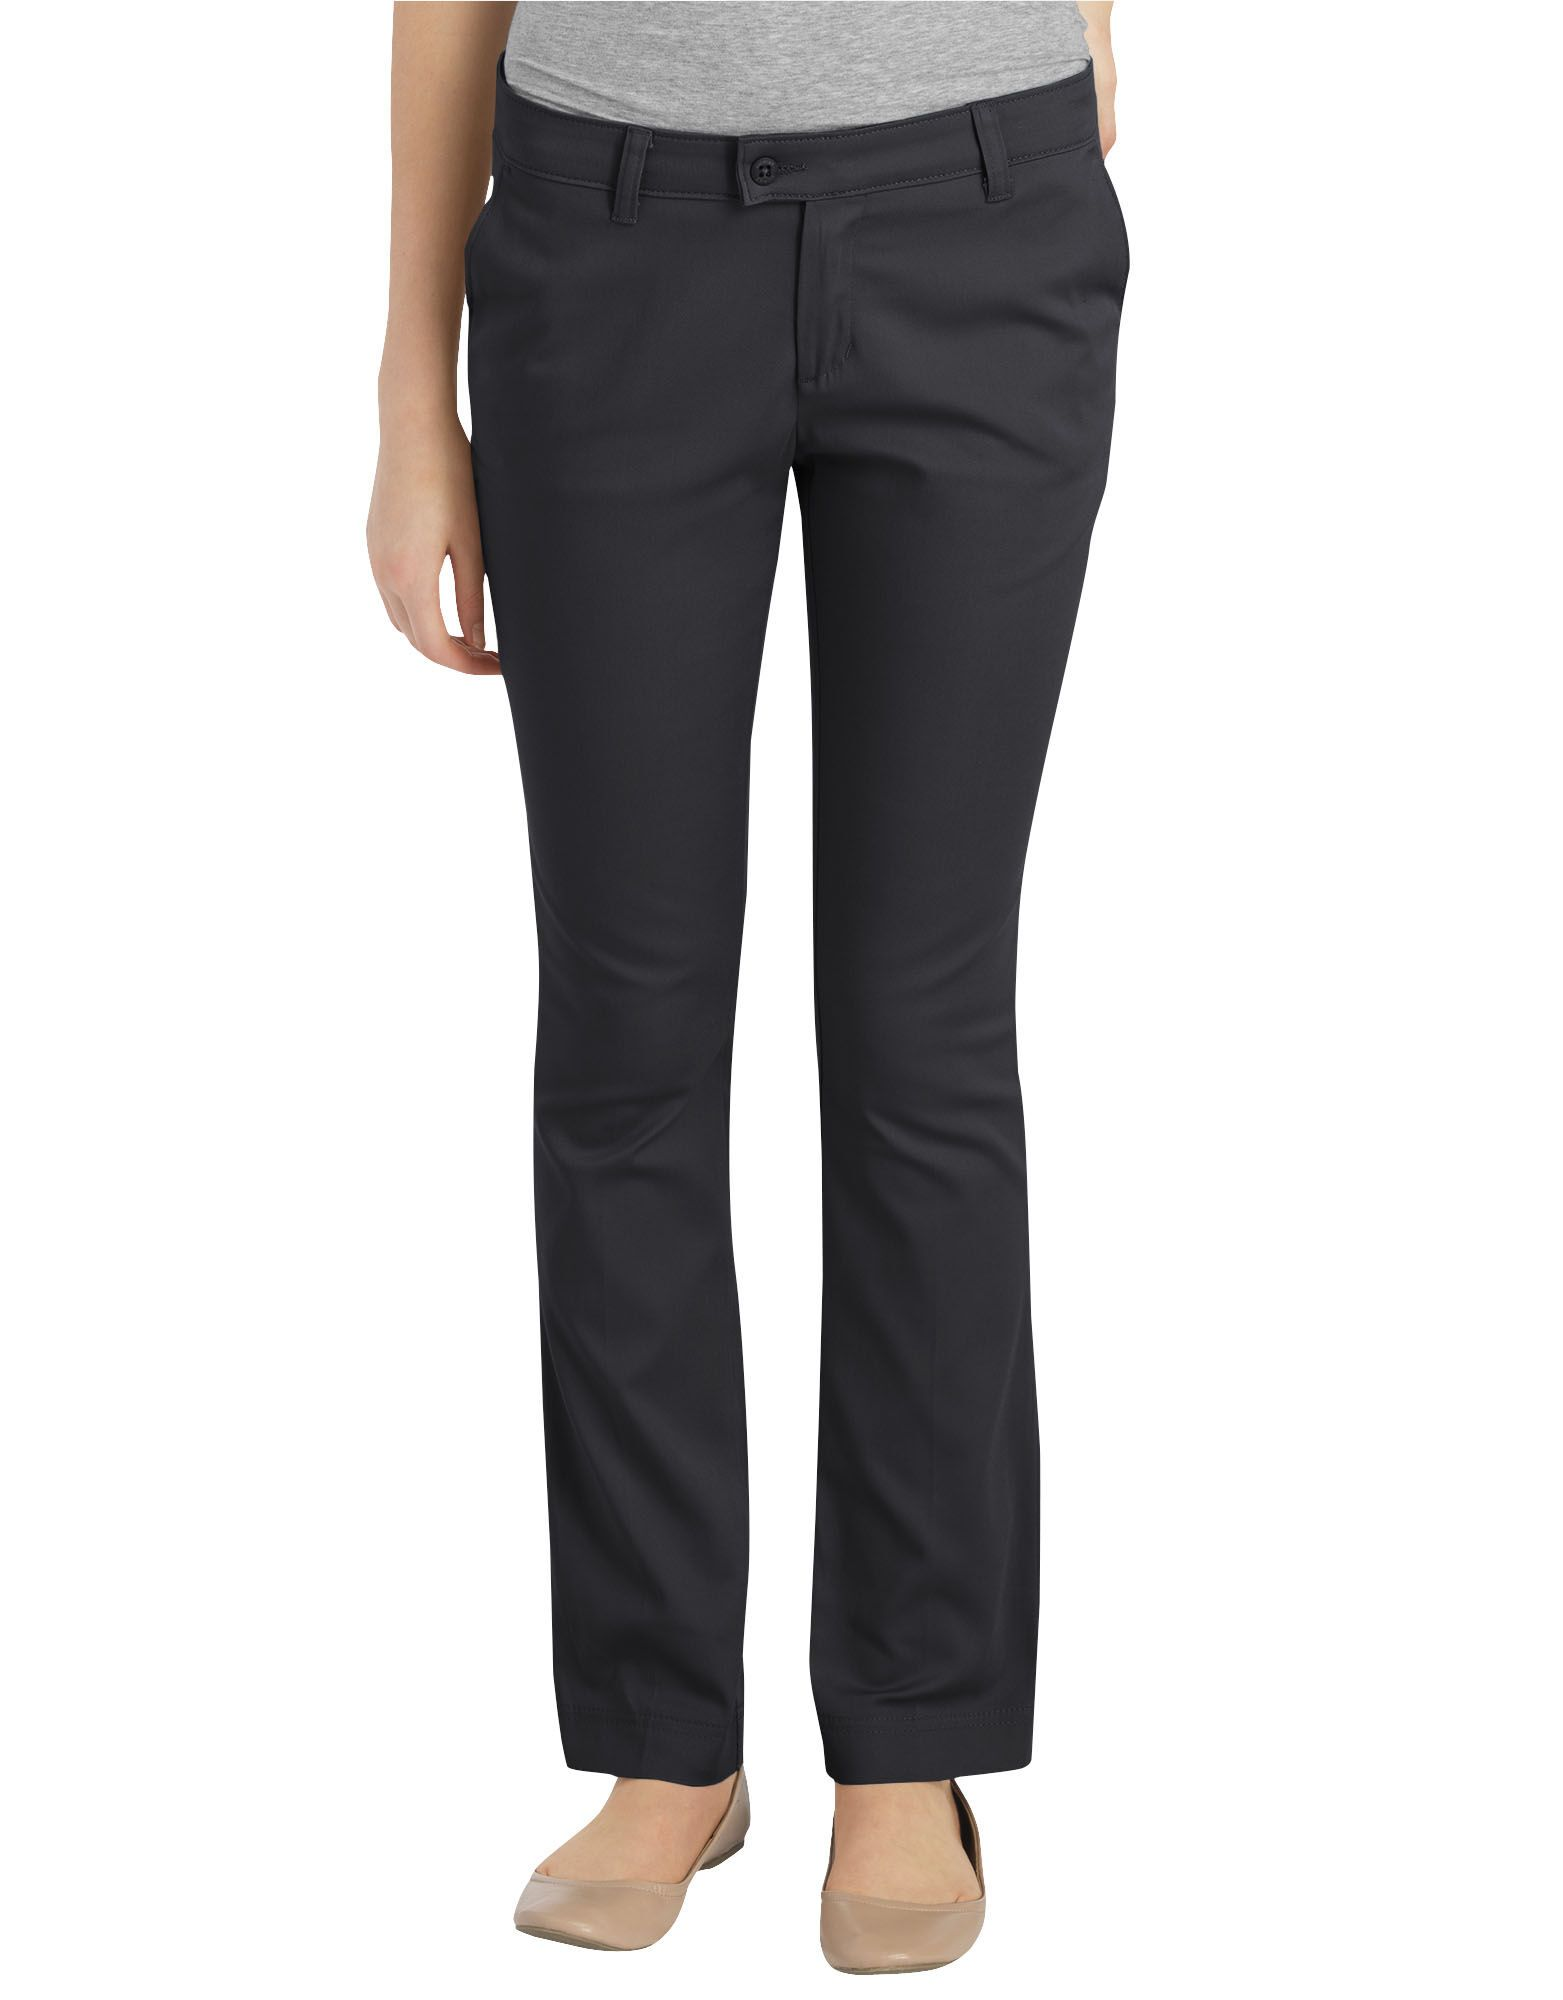 Juniors Schoolwear Slim Fit Straight Leg Stretch Pants-